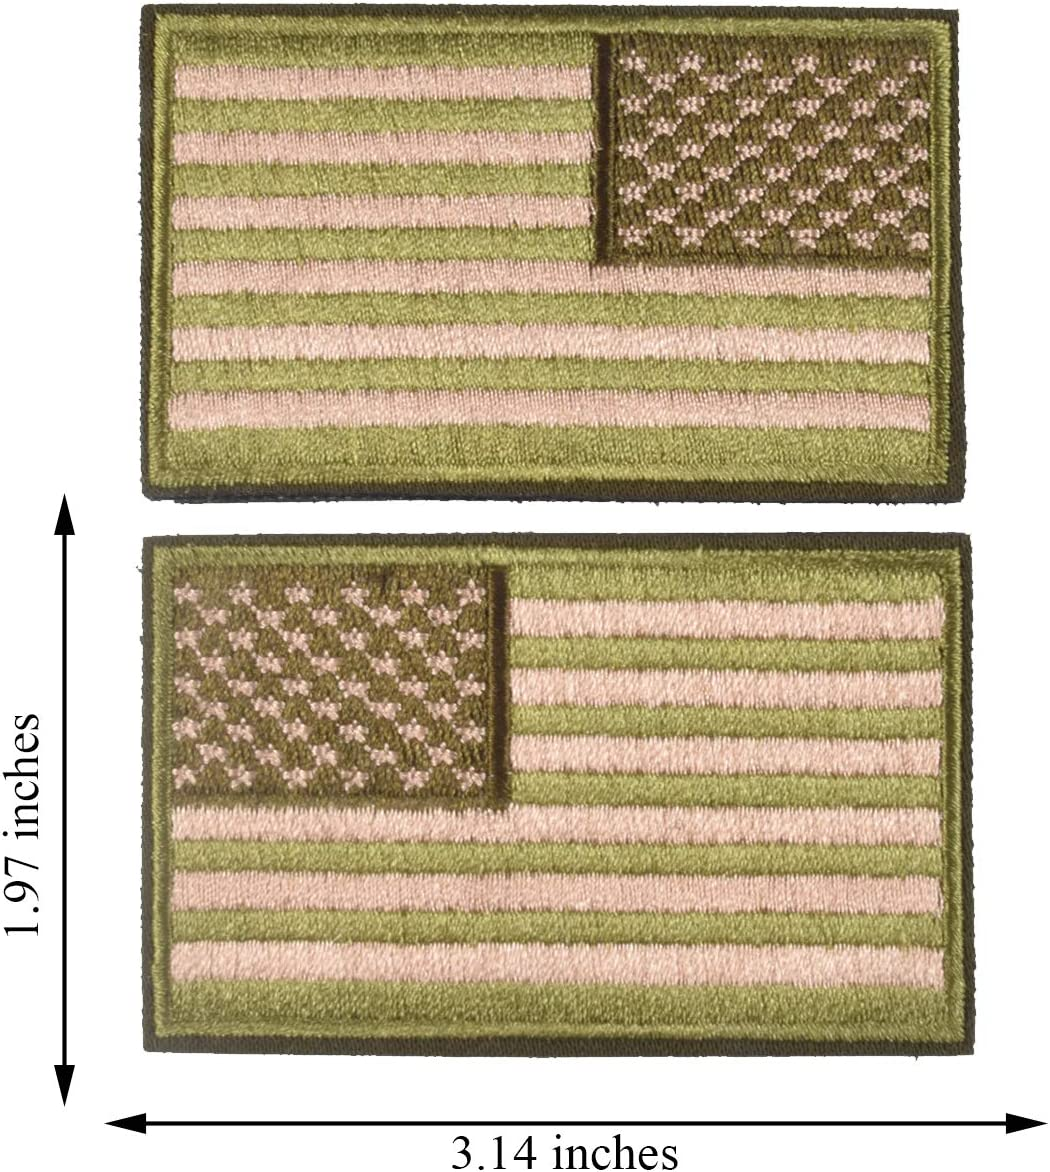 USA Flag Patch 2x3 Inch Dont Tread on me Patch American Flag Tactical Military Morale Patch Border USA United States for Uniform Emblem 2 Pcs.